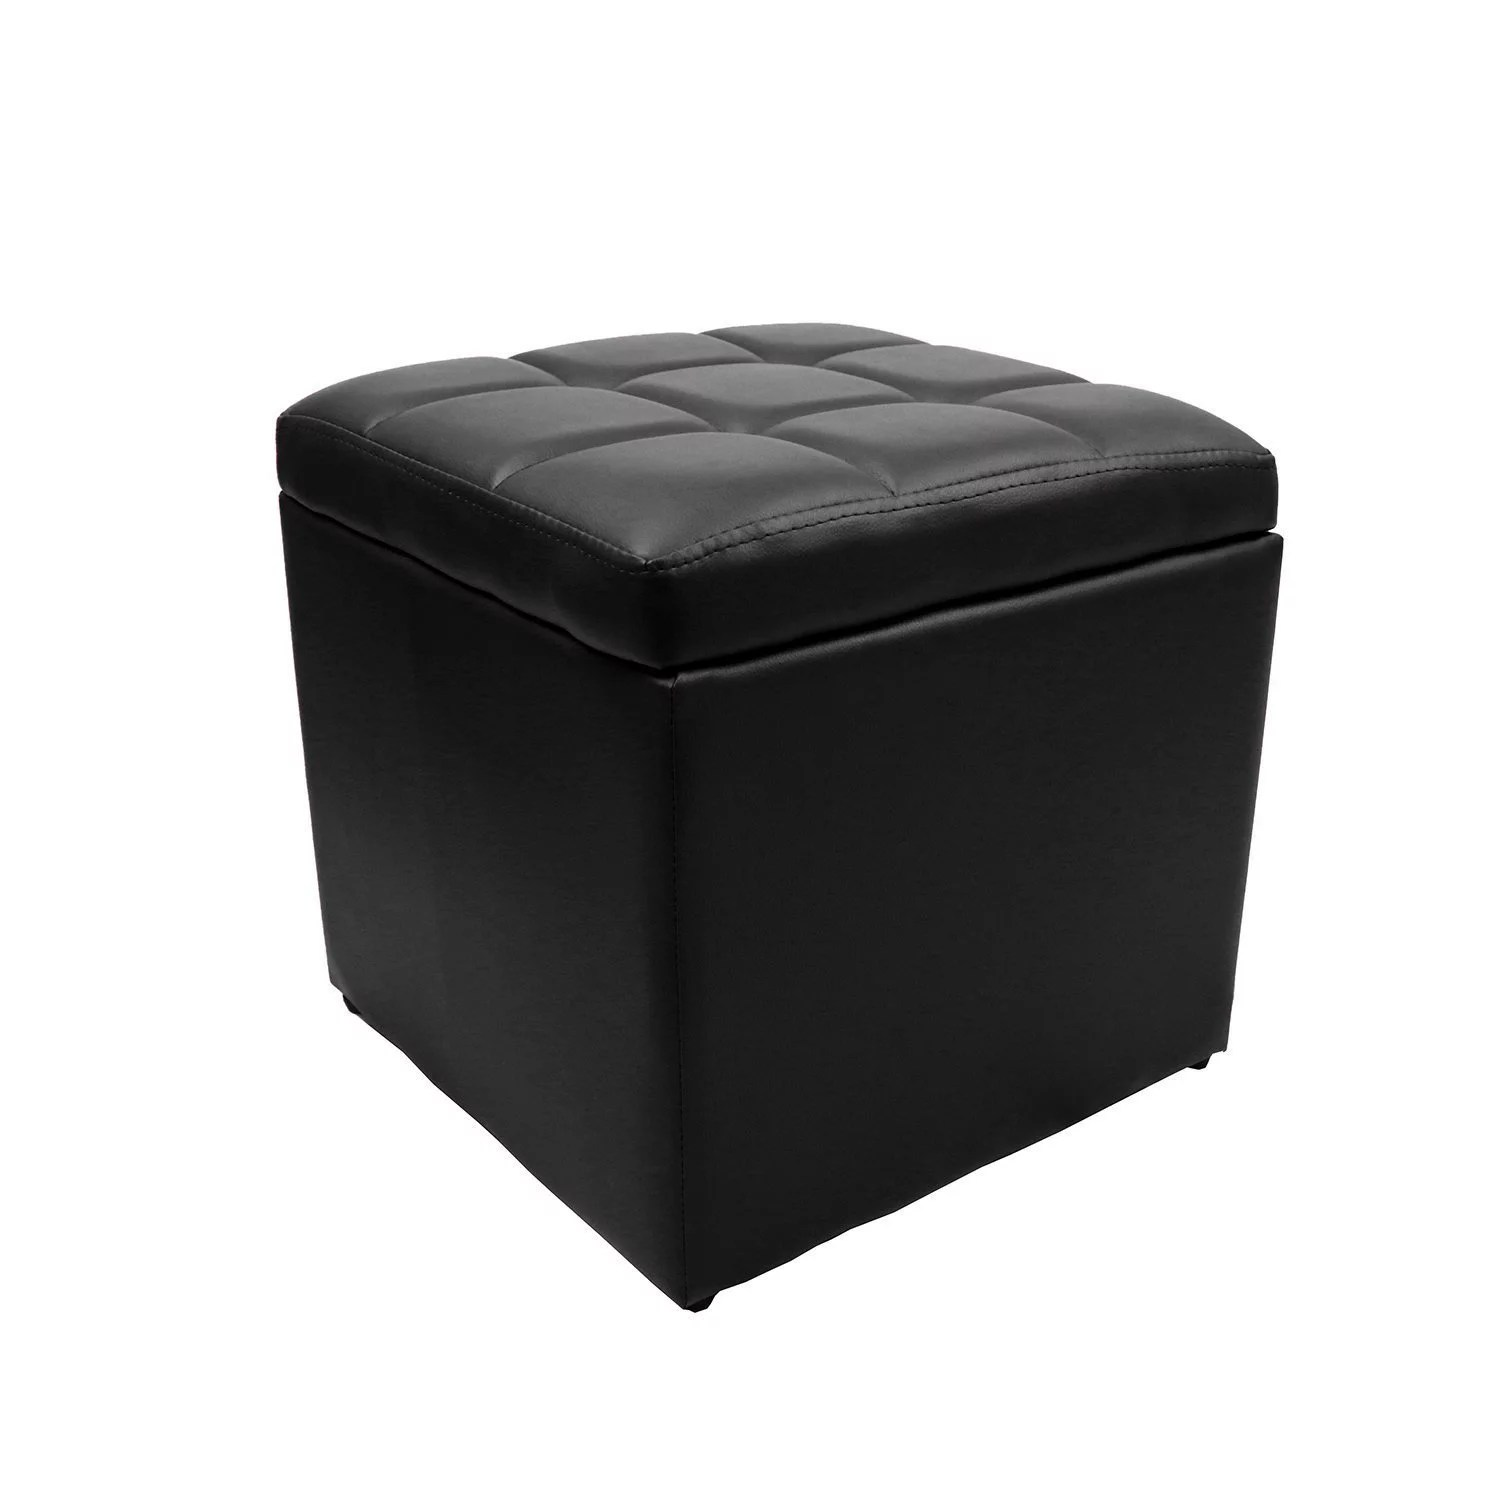 16 square unfold leather hinged storage ottoman bench footstool cocktail seat black